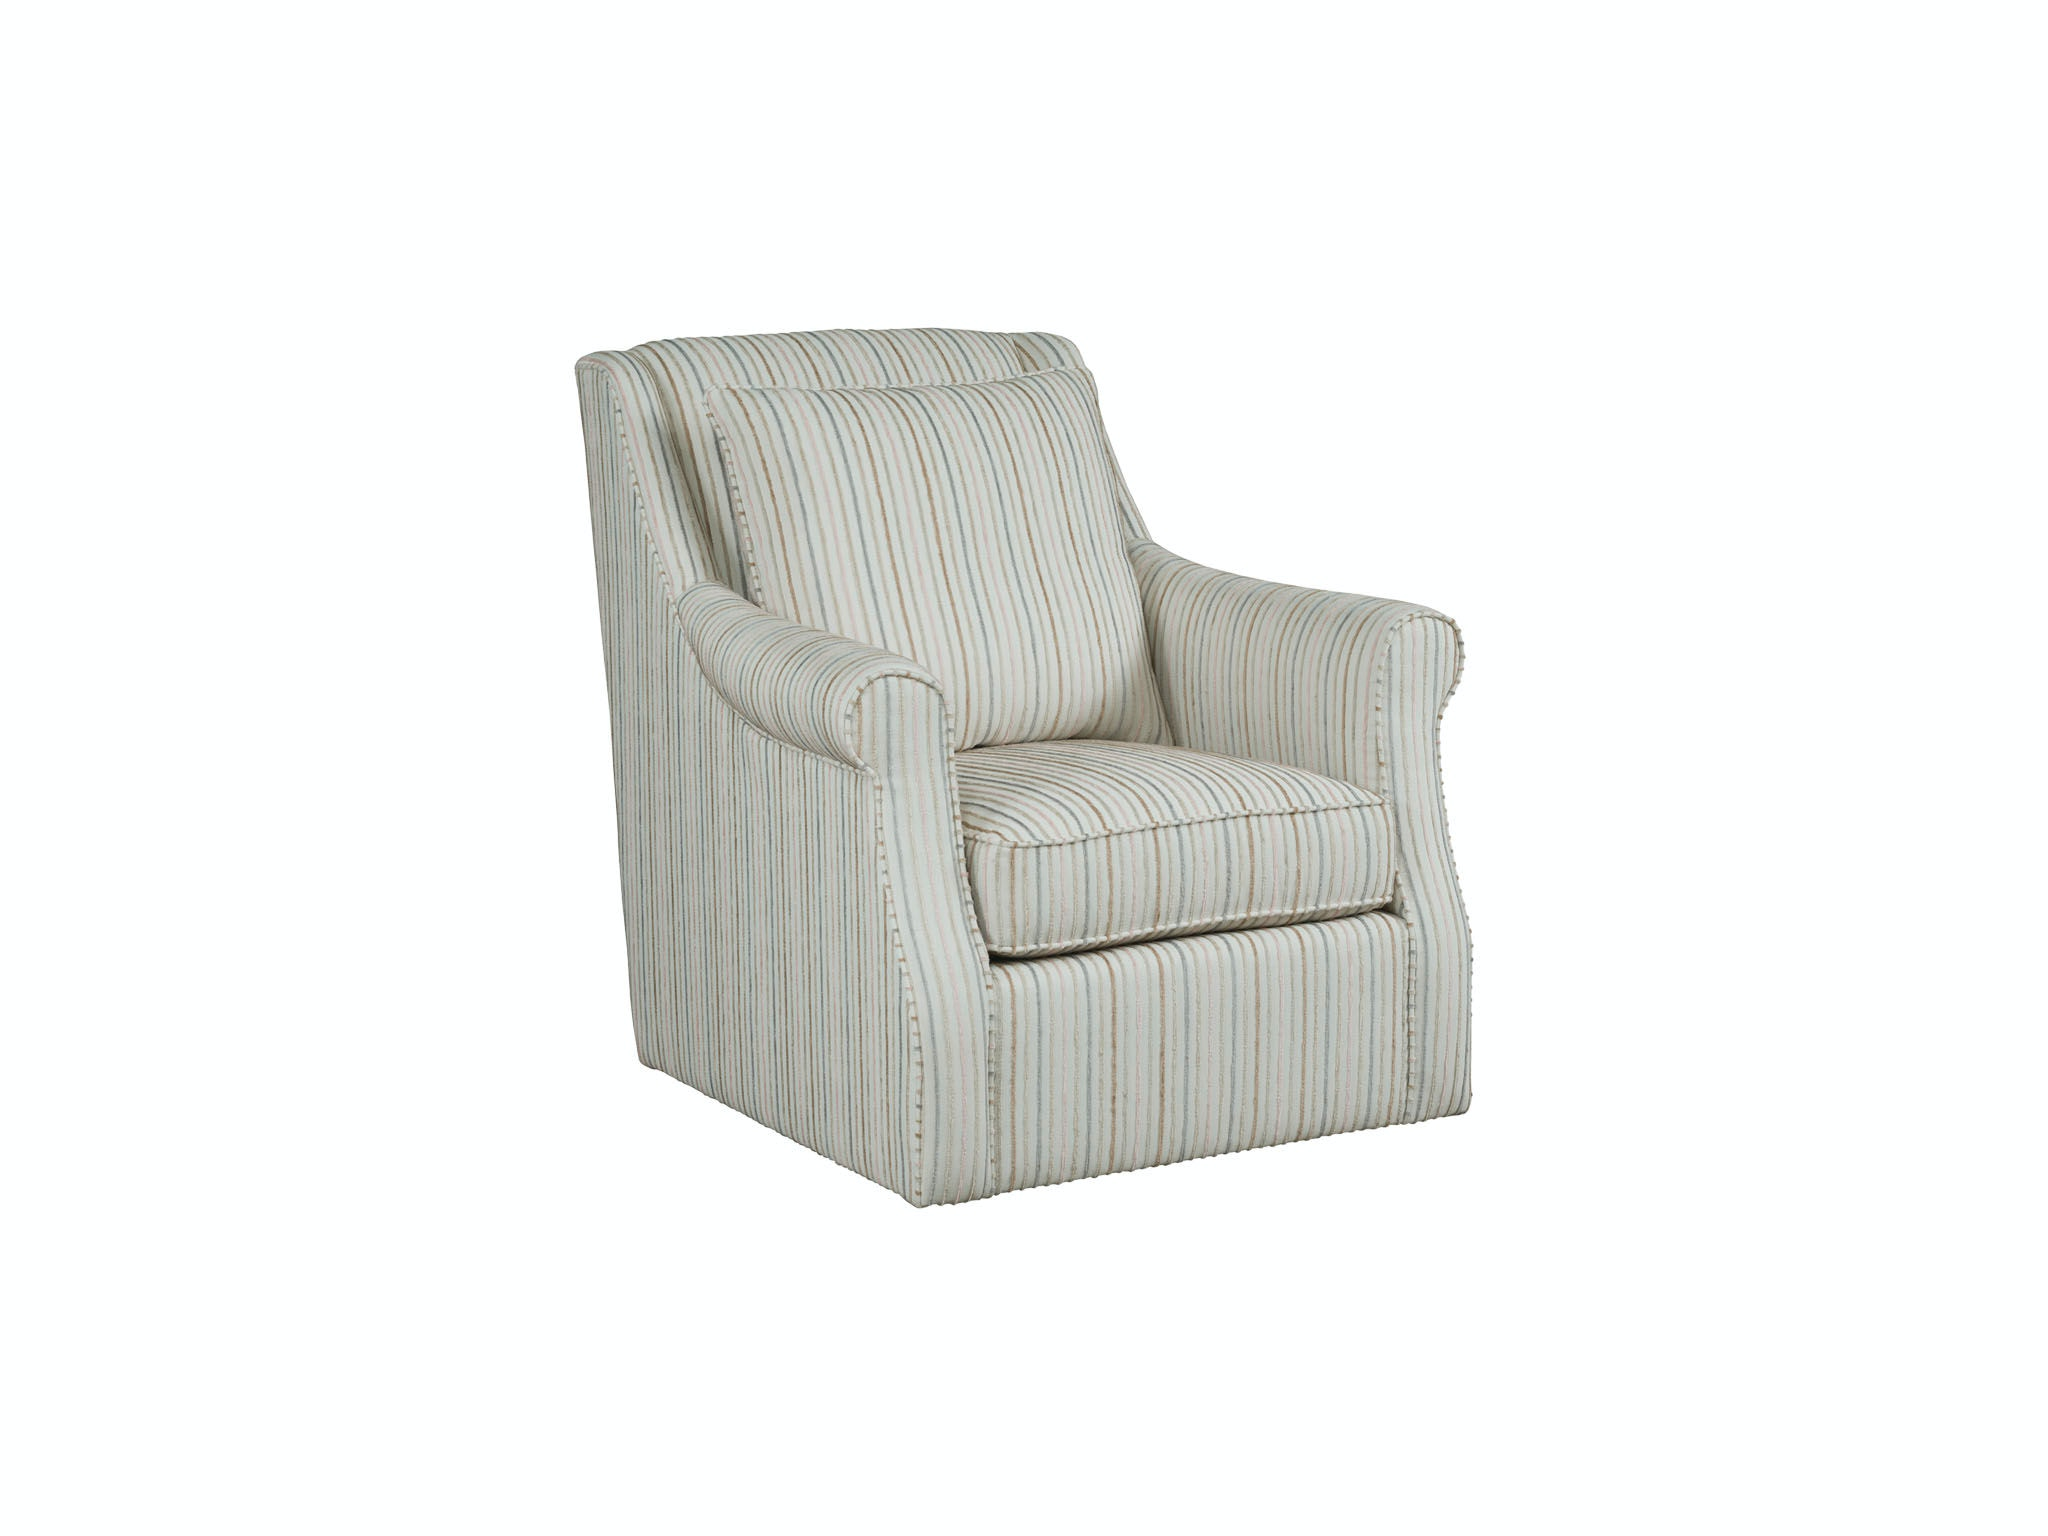 Kincaid Furniture Tate Swivel Glider Chair 013 02